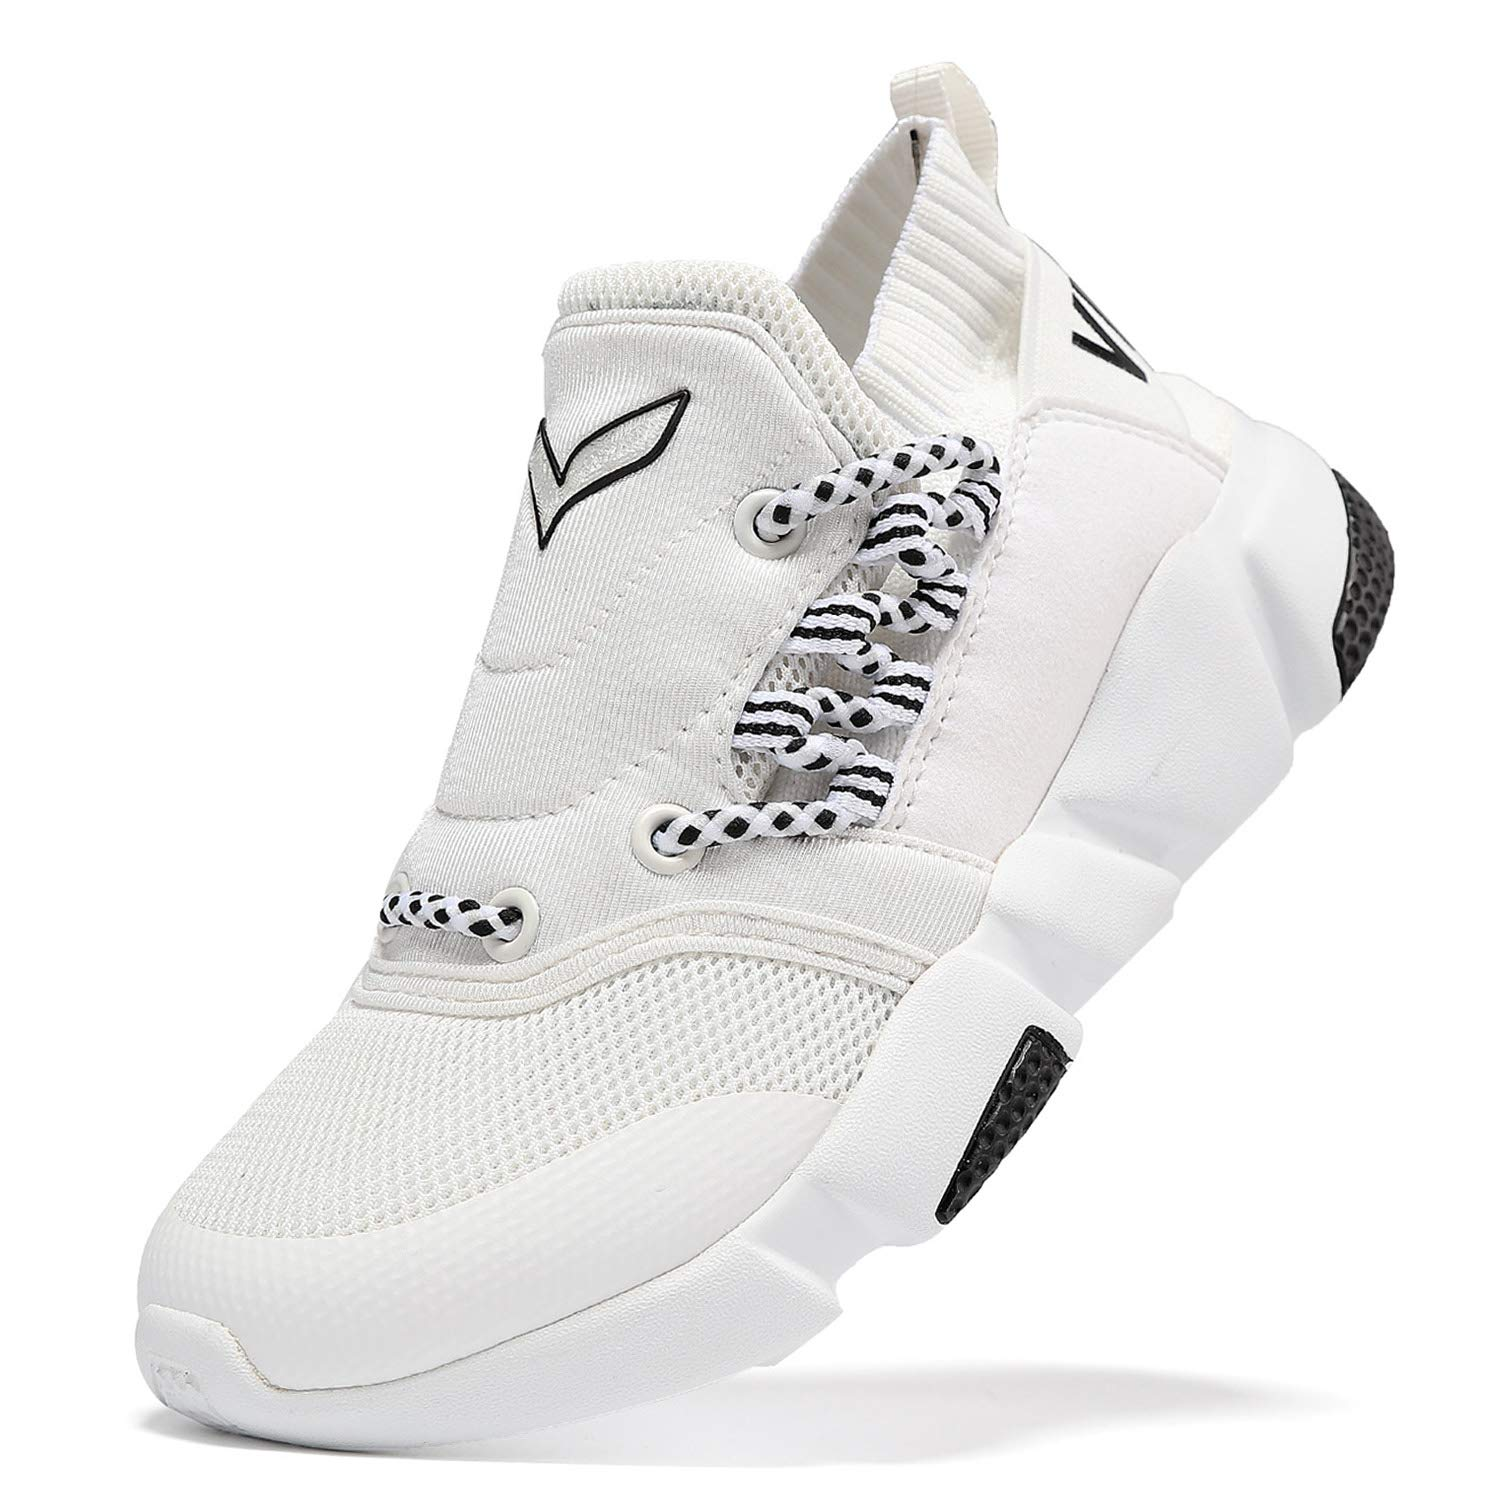 WETIKE Kids Shoes Boys Girls Sneakers High Top Lightweight Sports Shoes Slip On Running Walking School Casual Tennis Wrestling Trainer Shoes Soft Knit Mesh White Size 1.5 by WETIKE